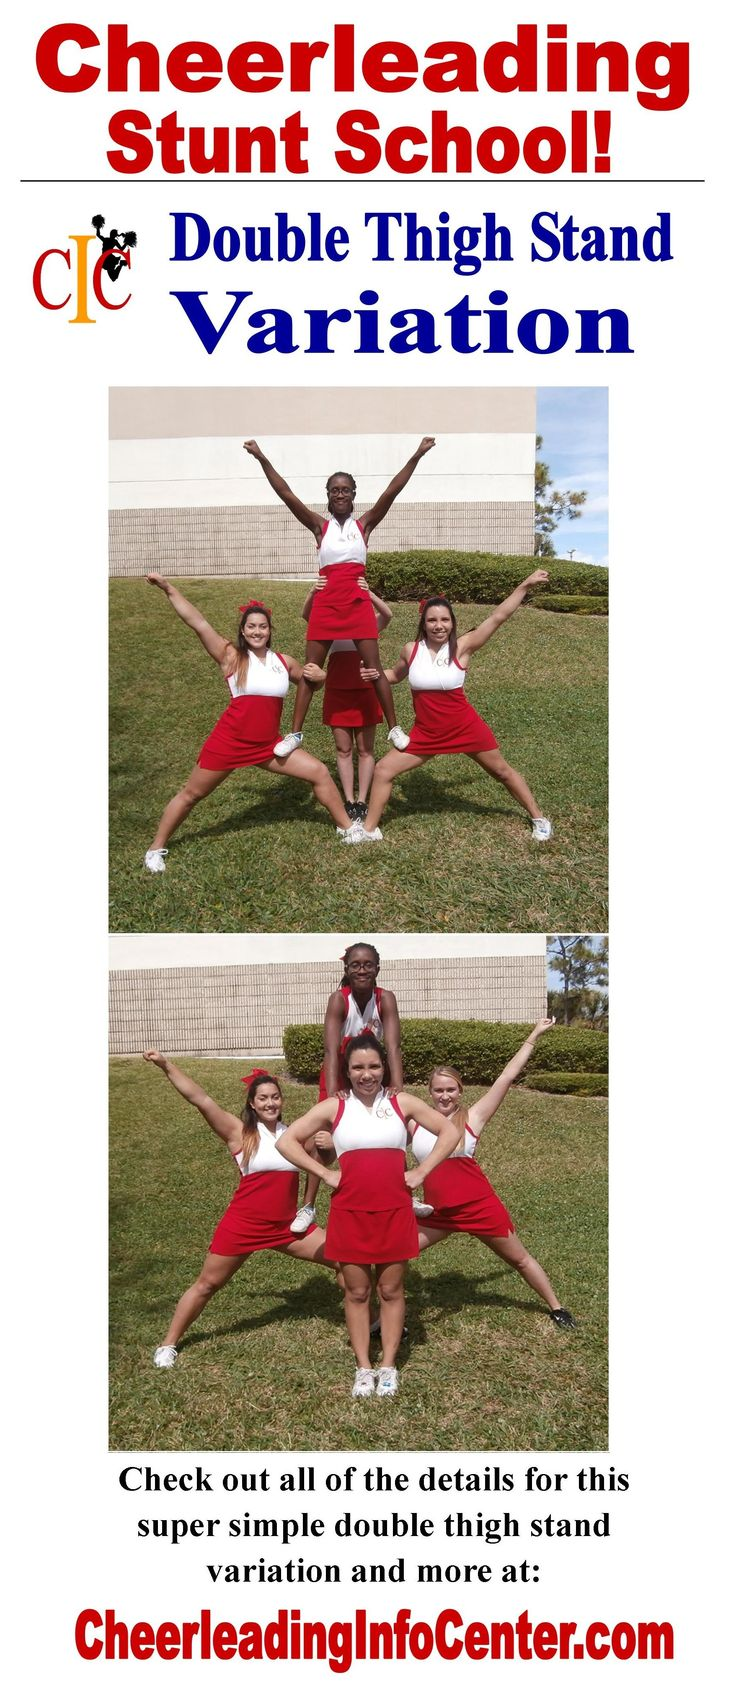 Are you looking for some super simple cheerleading stunts that look great?  Check out the Stunting Section on CheerleadingInfoCenter.com